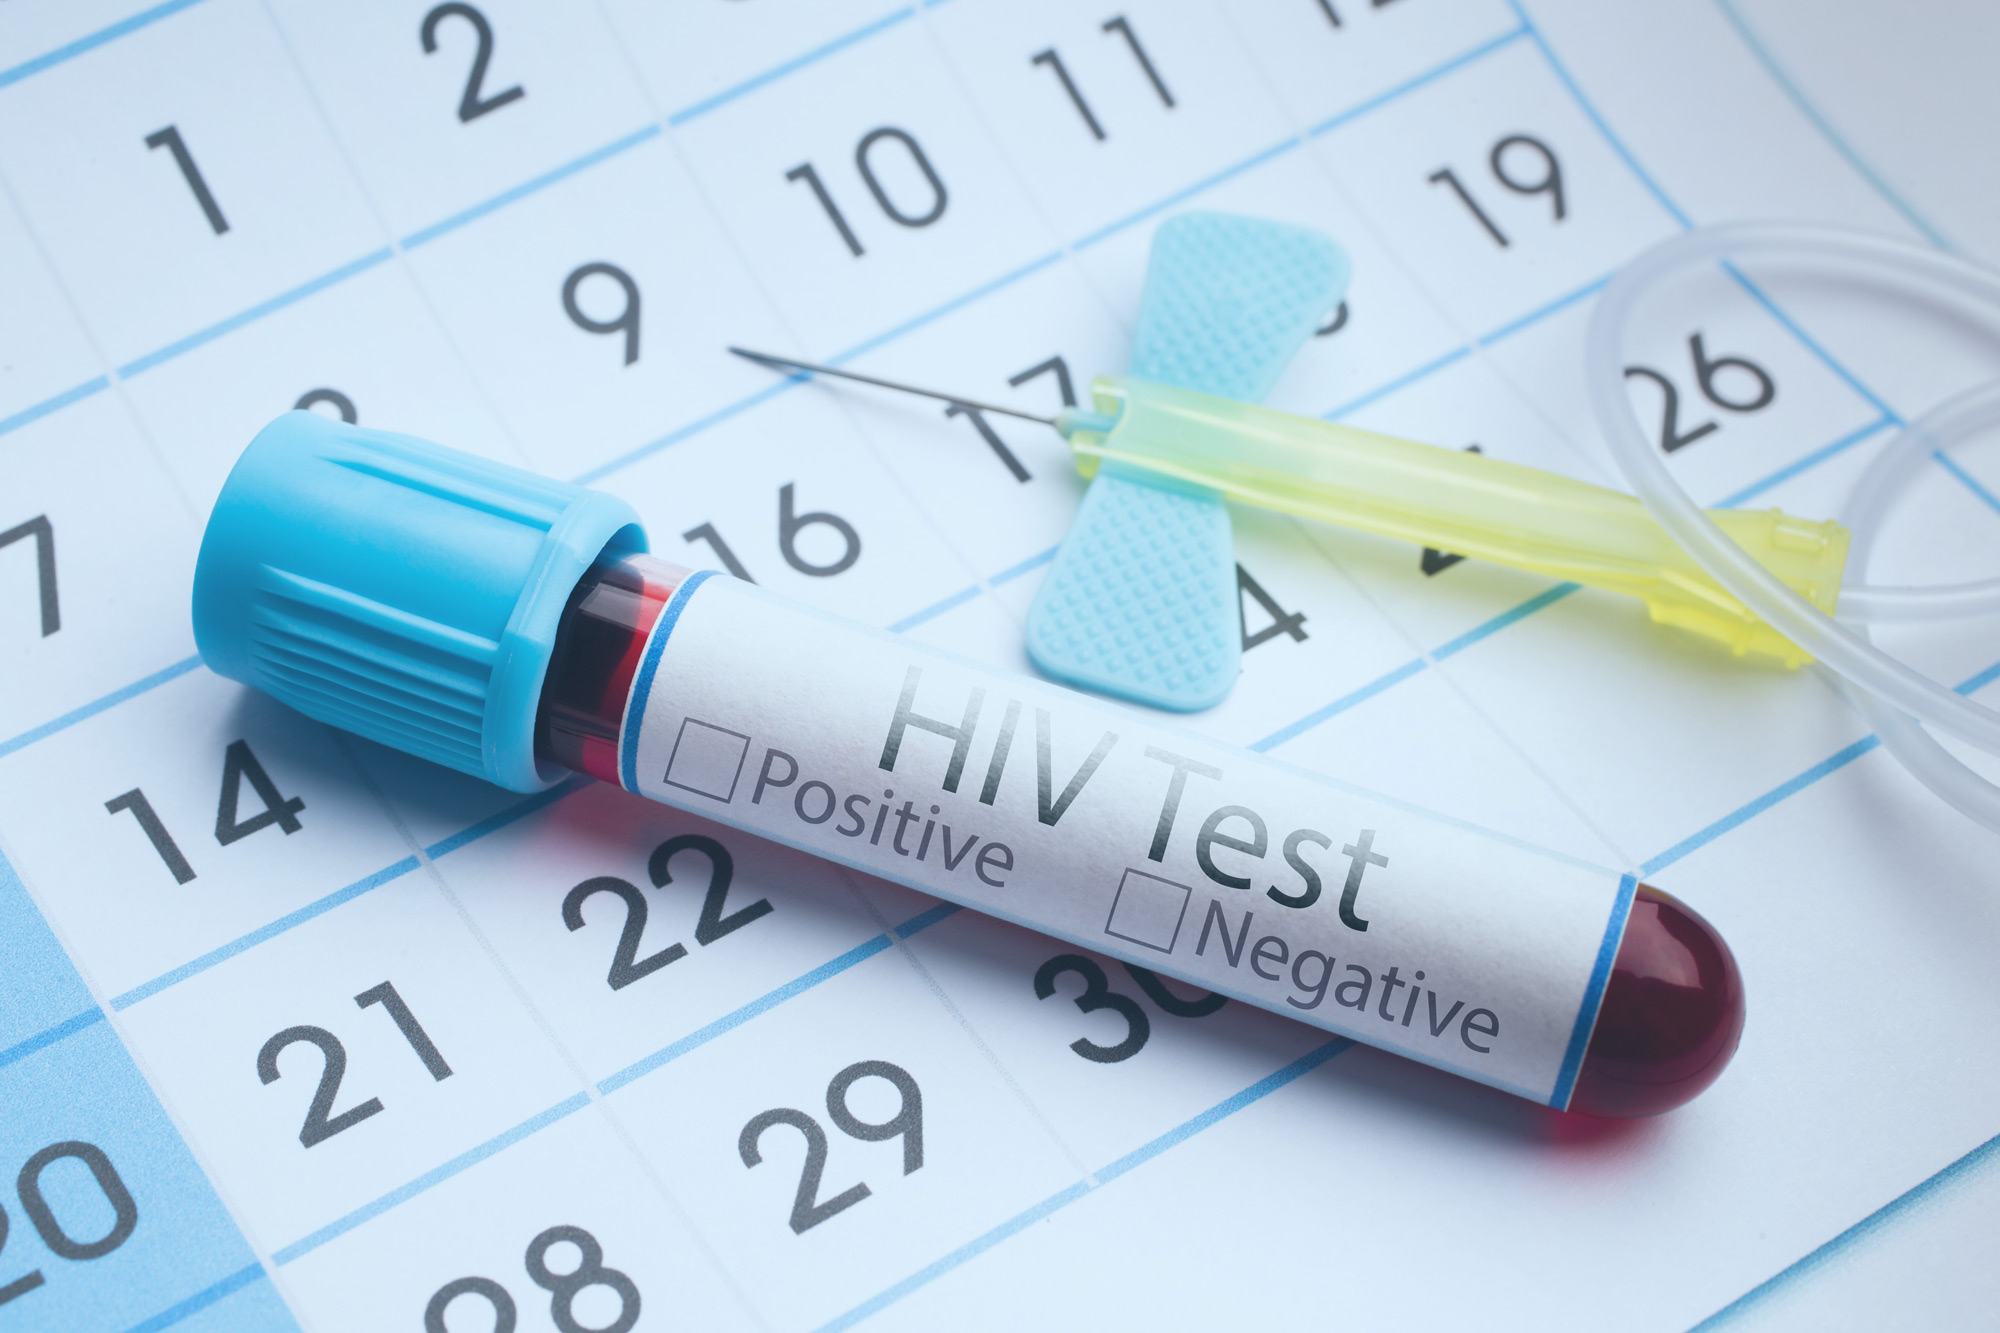 Cure for HIV AIDS Monthly Antiretrovirals Injection can now Treat HIV Easily